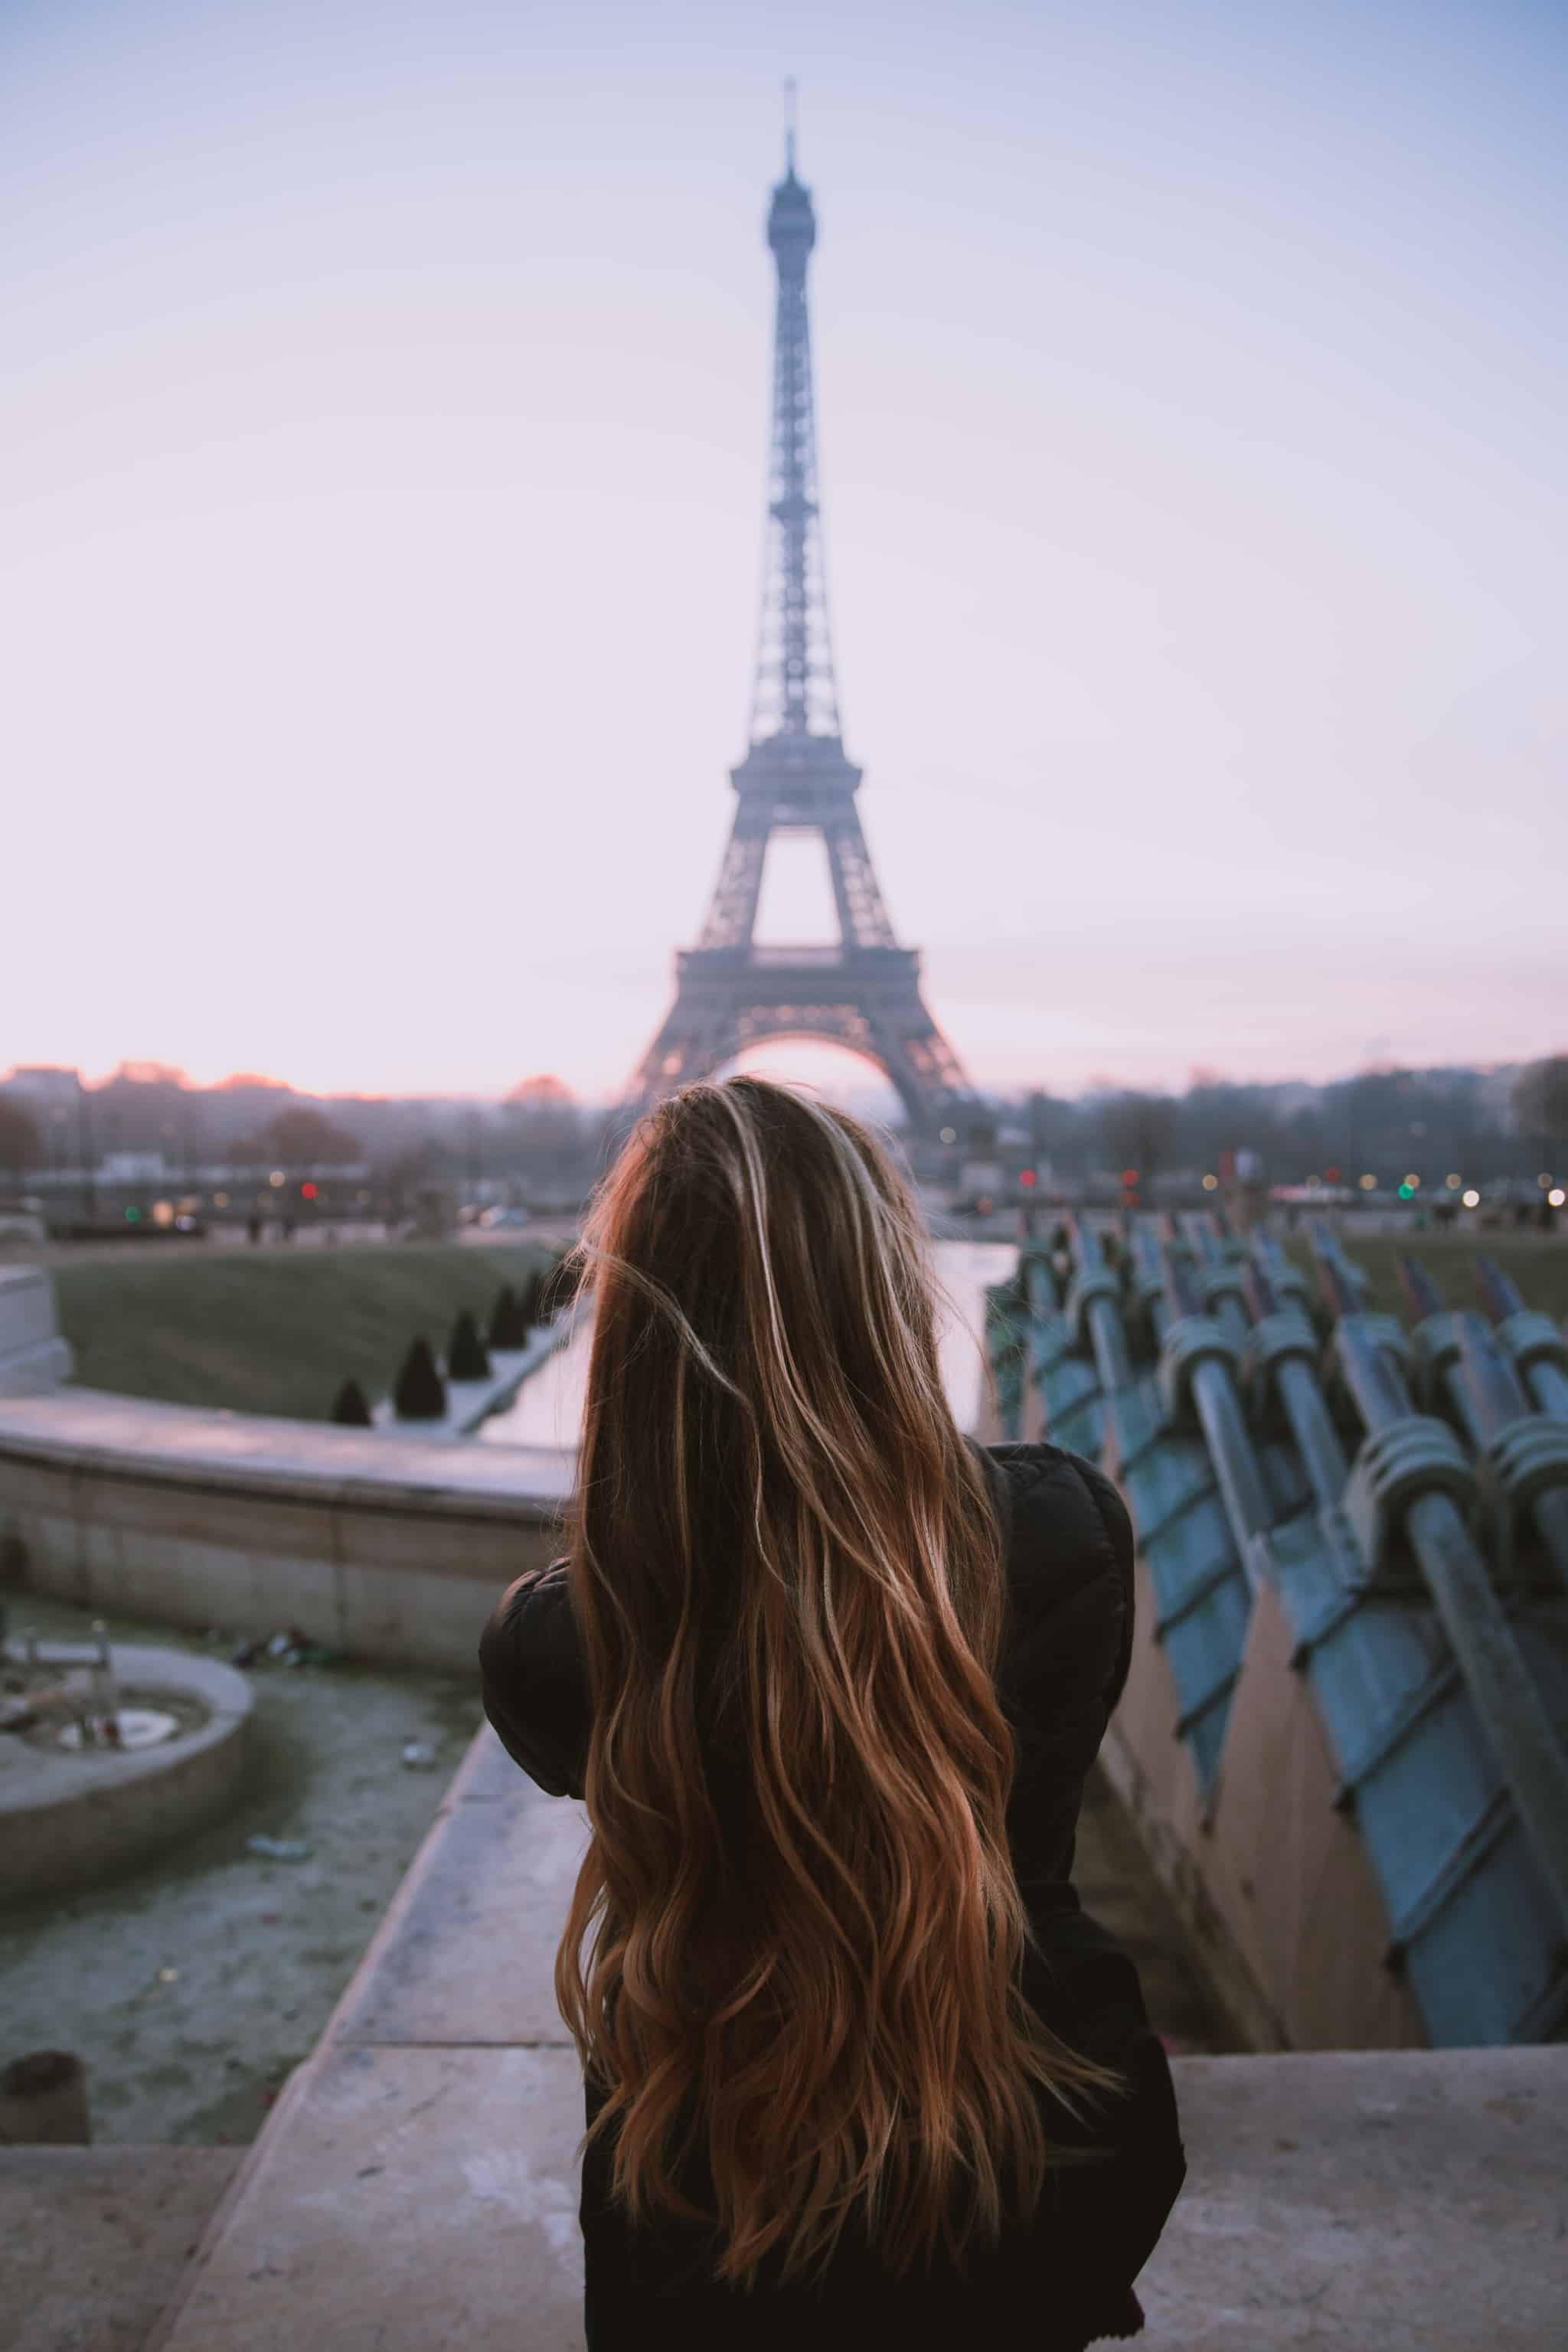 Discover the best photography spots in Paris, France in this all-inclusive post! We're including iconic favorites like the Eiffel Tower and Champs Elyssse, but also hidden gems like Saint Chapelle and Musee d'Orsay Clocks. Find the best Instagram spots in Paris here! #paris #france #eiffeltower #photography #french #instagram #laduree #champselysees #museedorsay #arcdetriomphe #louvre #macaron #europe